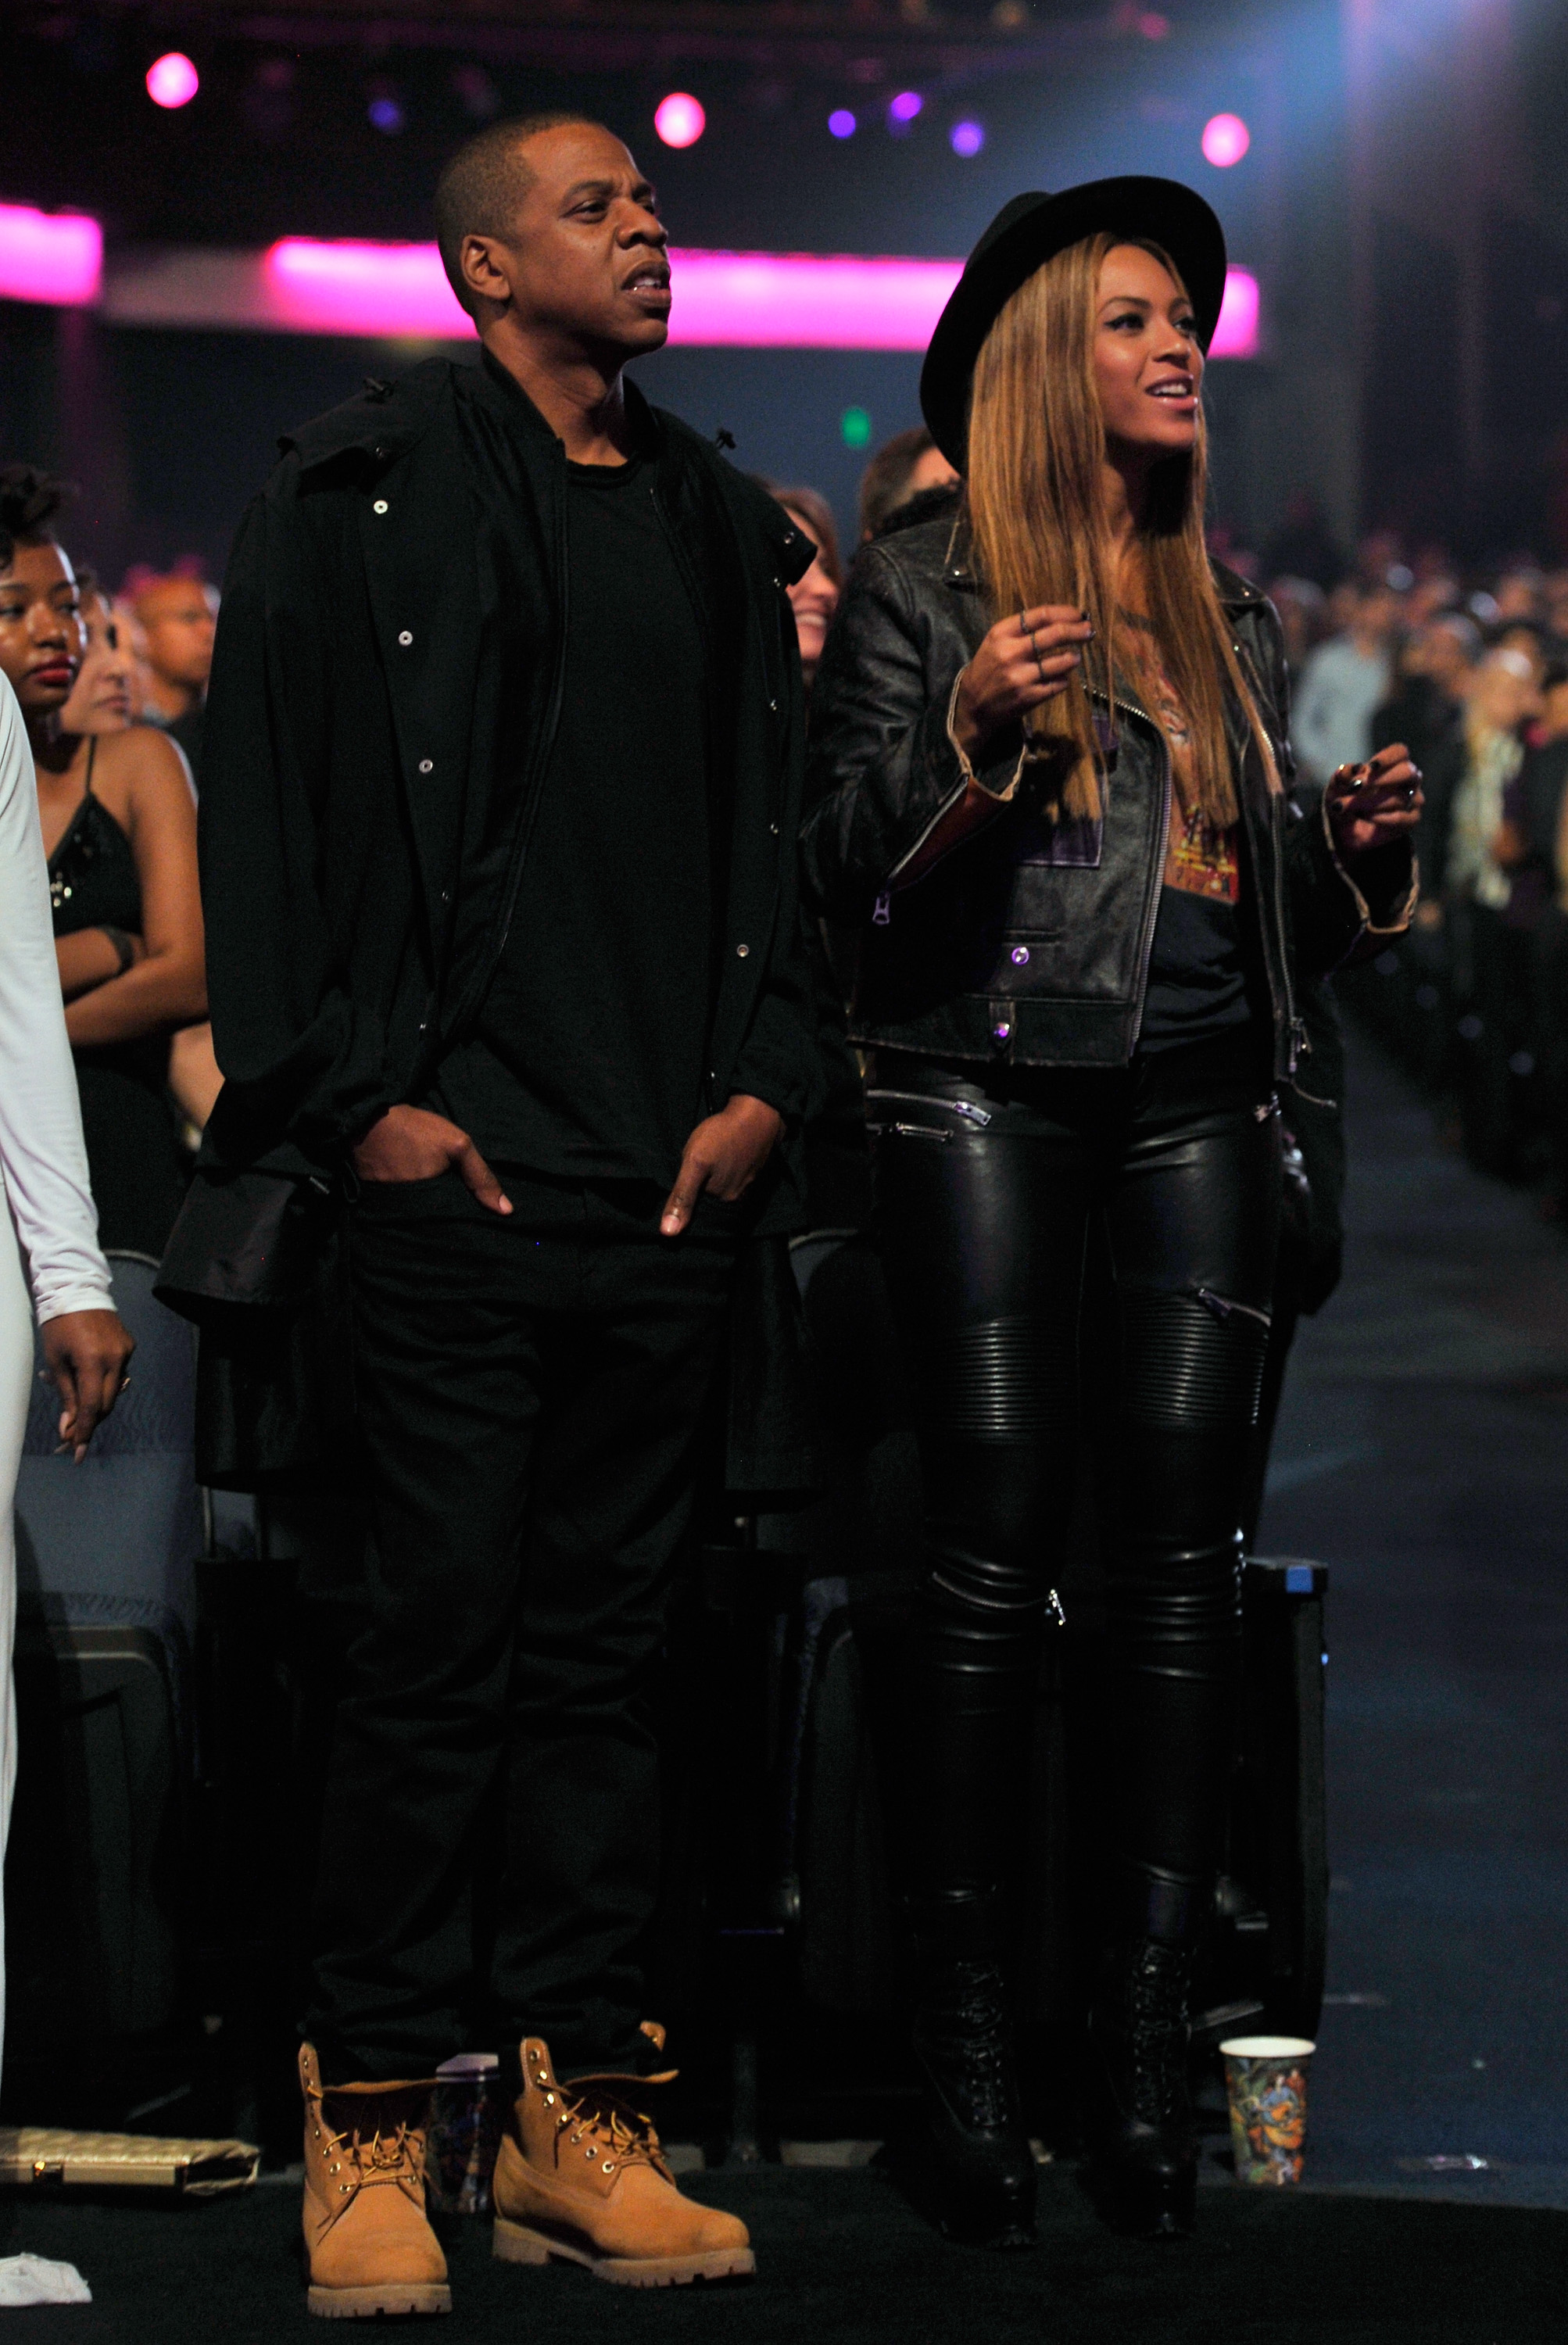 Jay-Z and Beyonce attend a Stevie Wonder: tribute at on February 10, 2015 in Los Angeles, California. (Photo by Lester Cohen/WireImage)